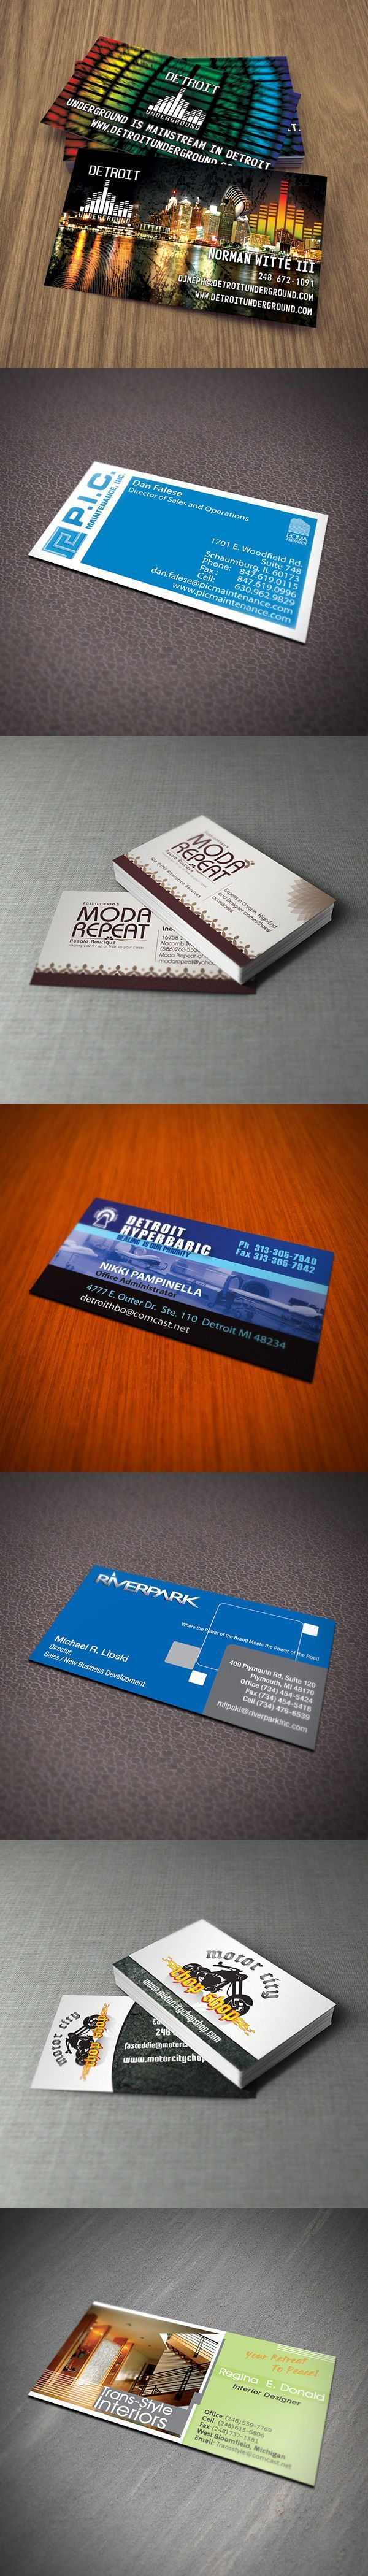 16 best travel agent business cards images on pinterest